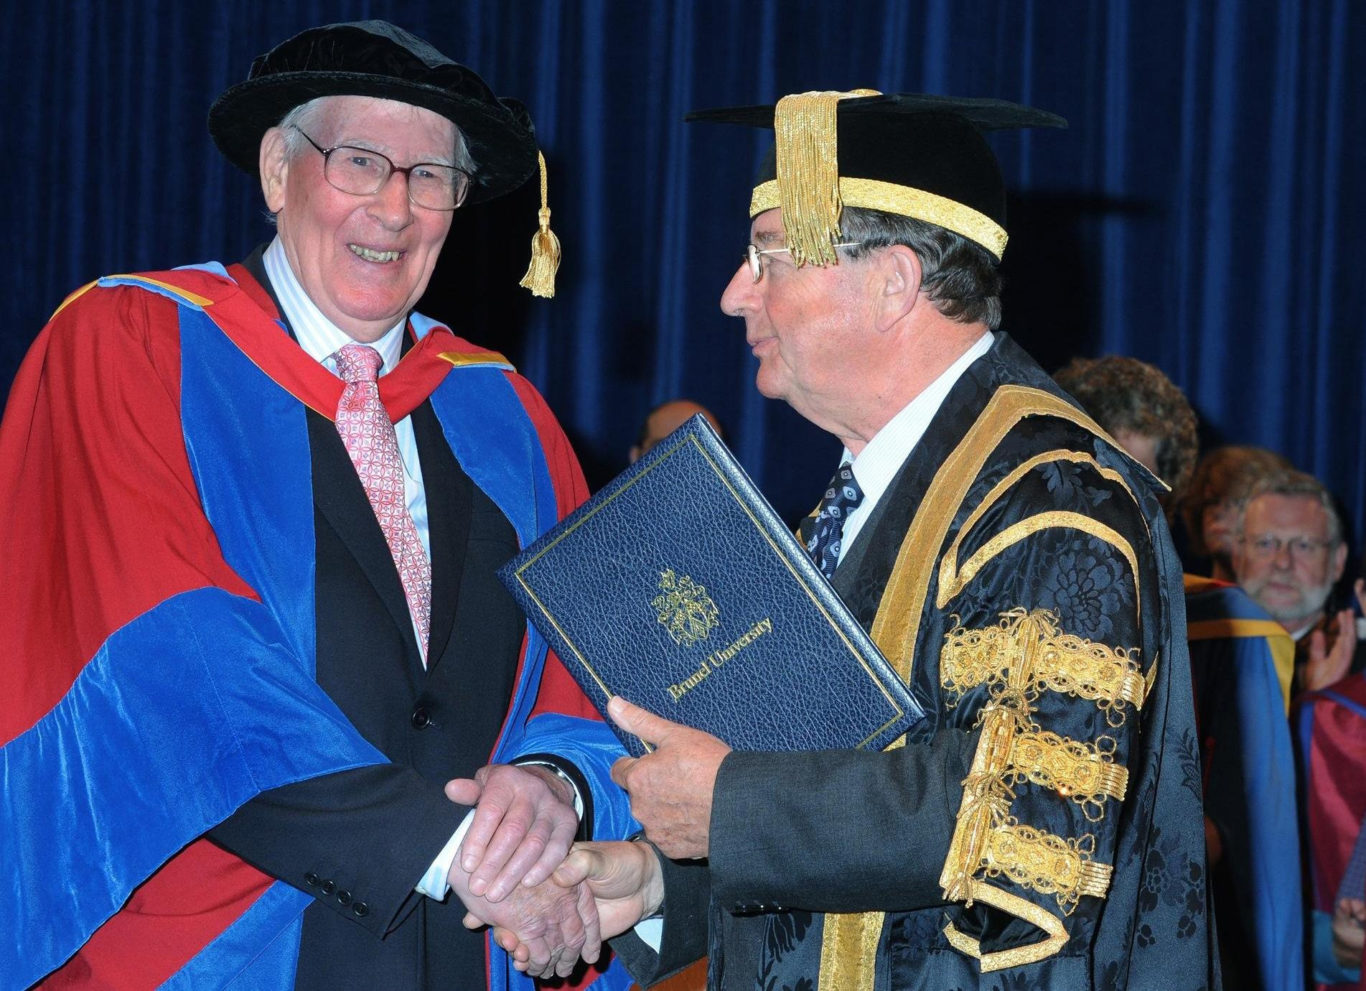 Sir Roger received an honorary degree of Doctor of the University from Brunel University (Brunel University/PA)